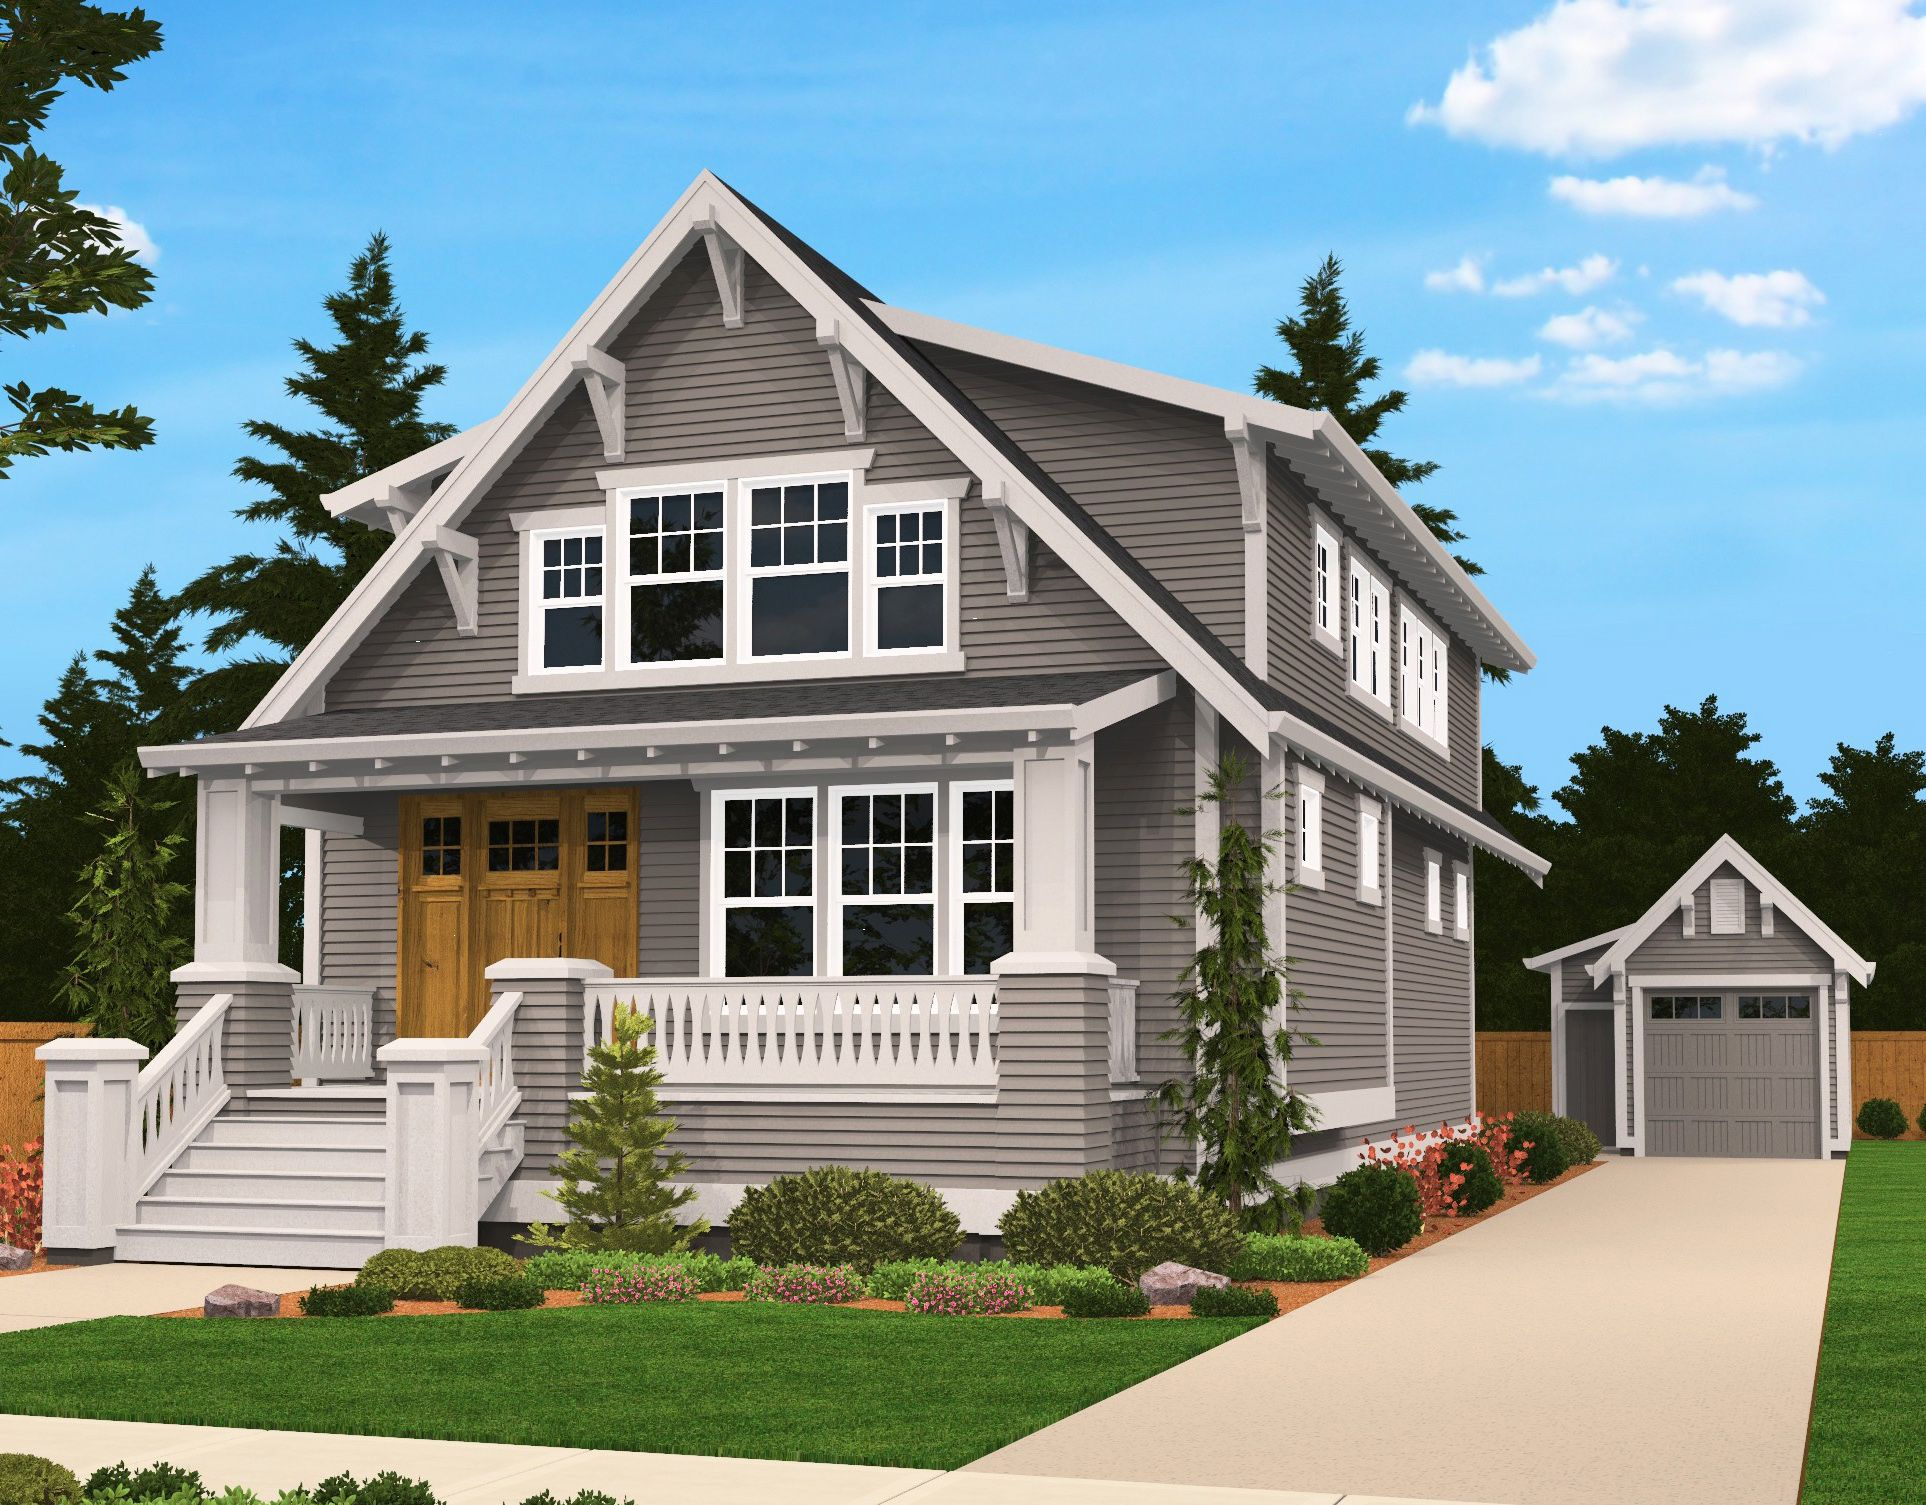 Plan 85058ms Handsome Bungalow House Plan Bungalow: bungalow cabin plans